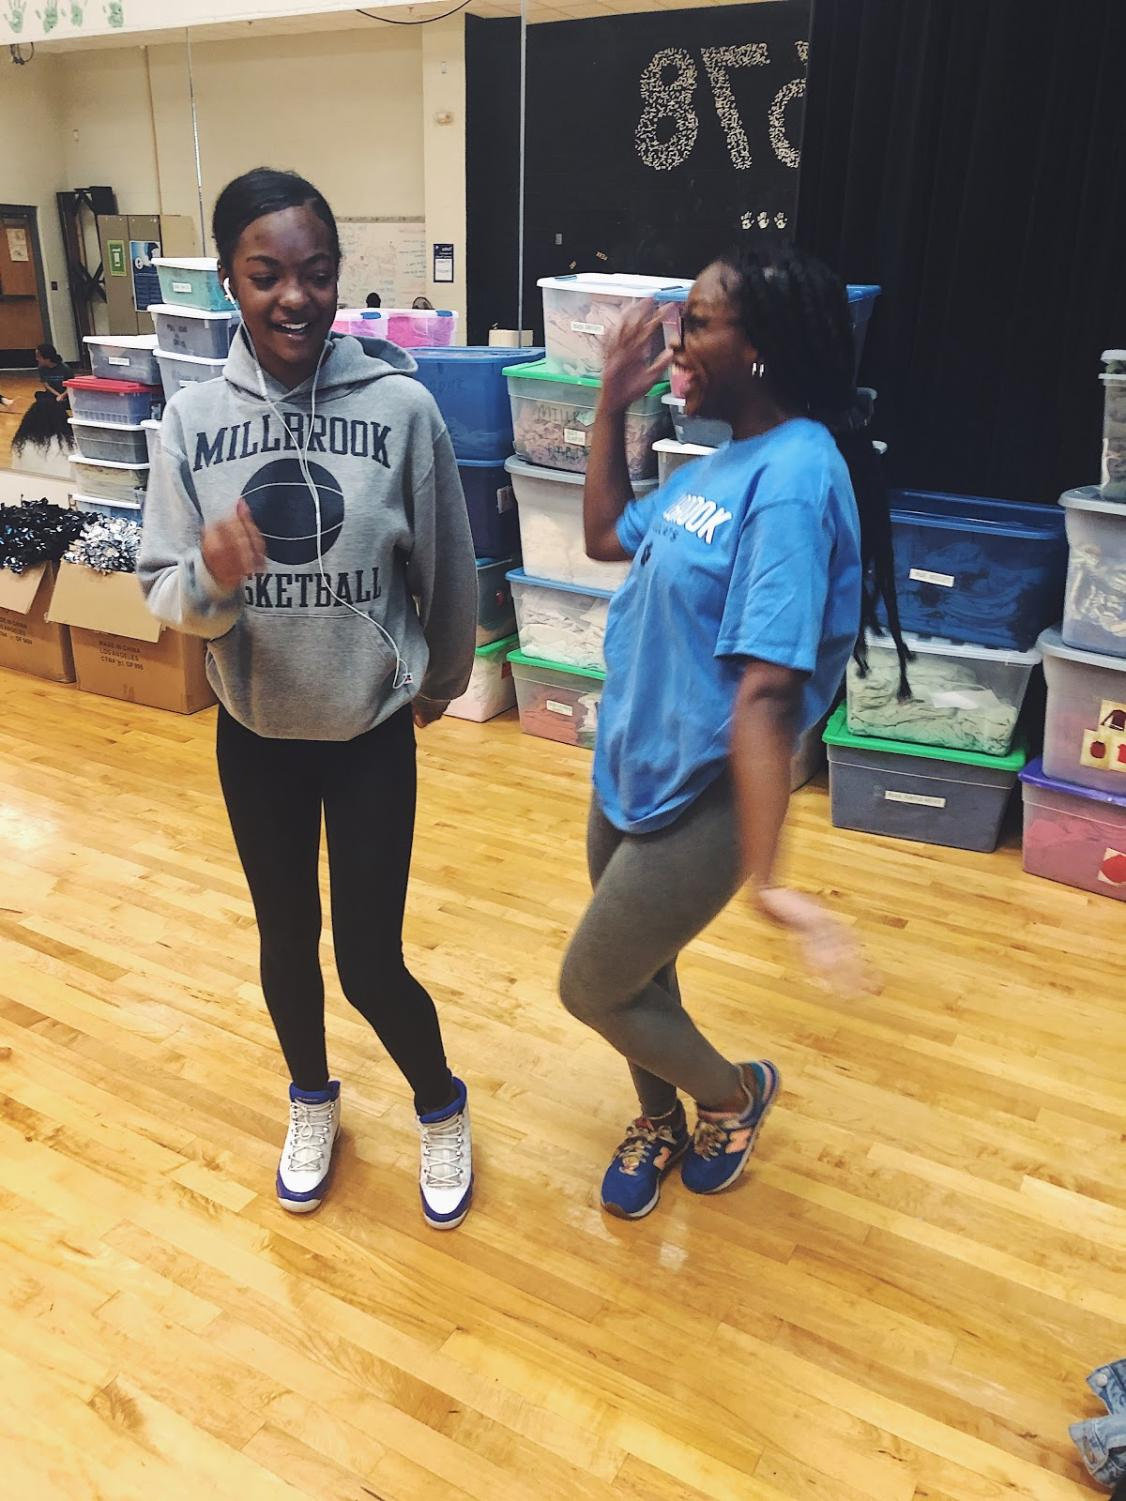 Dancing with her best friend, seniors Nazjeah Davis and Shamari Montegomery listen to their favorite song in dance class. Dancing is a great way to connect you with your friends, and 2019 has brought some great moves to go along with it.